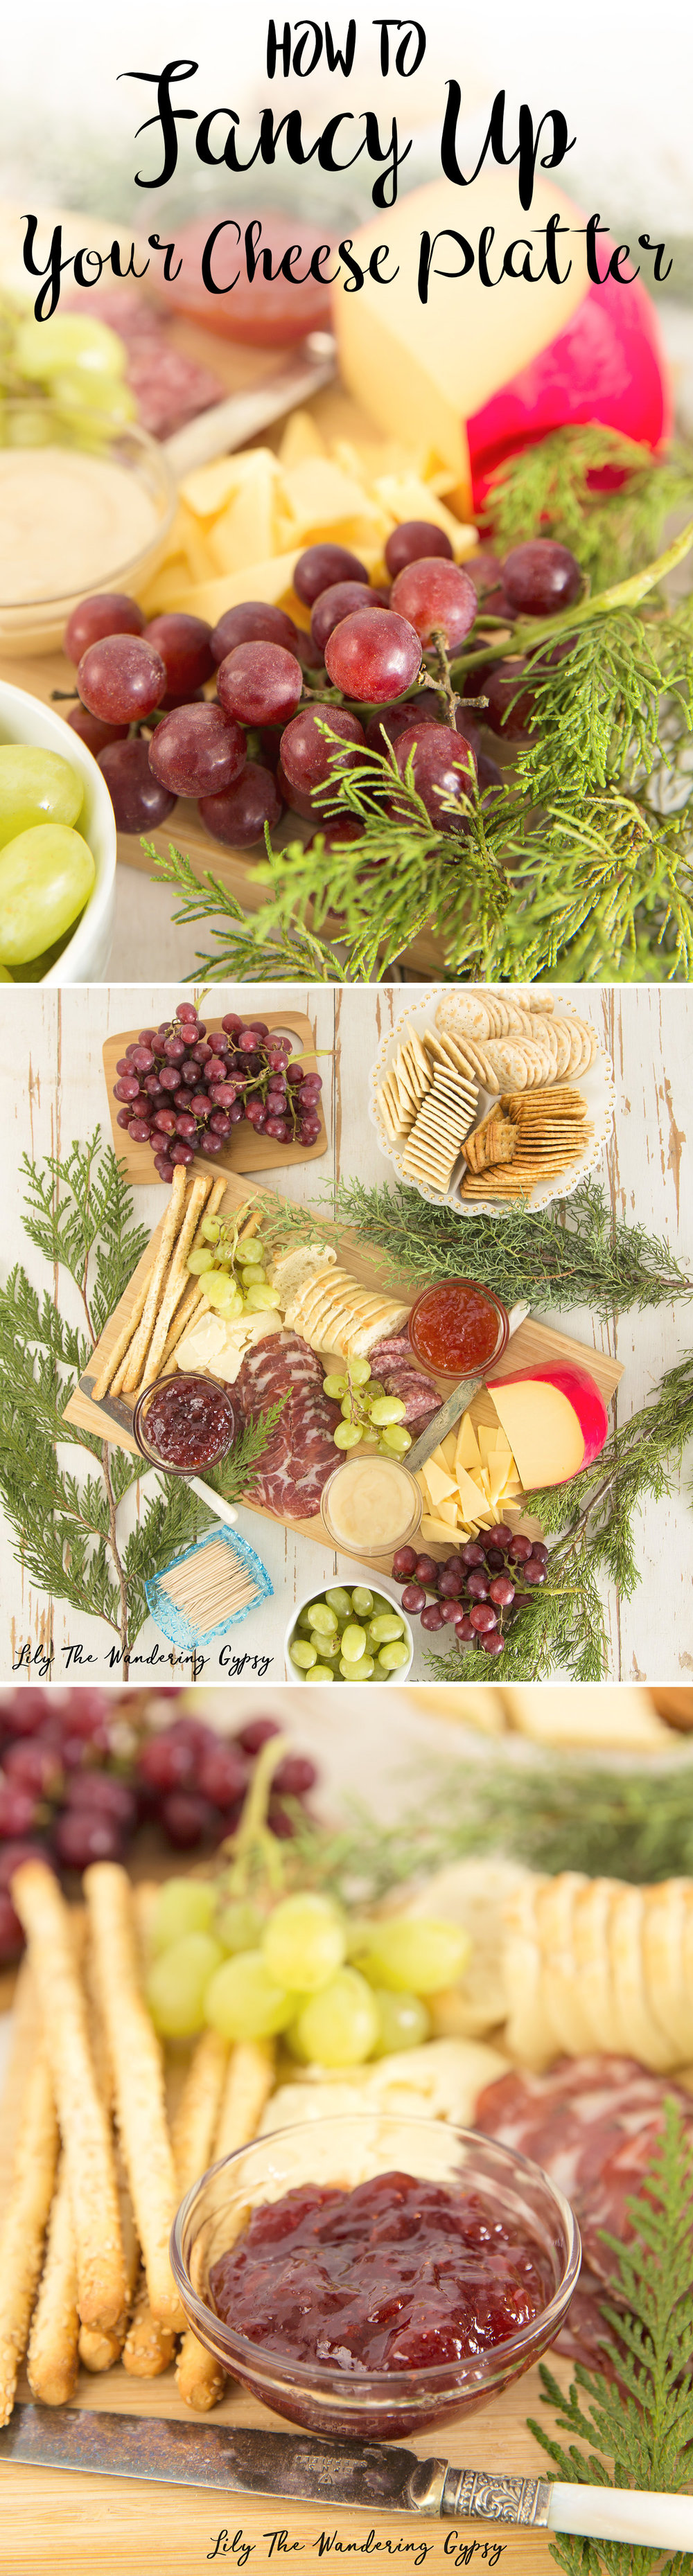 How To Fancy Up Your Cheese Platter